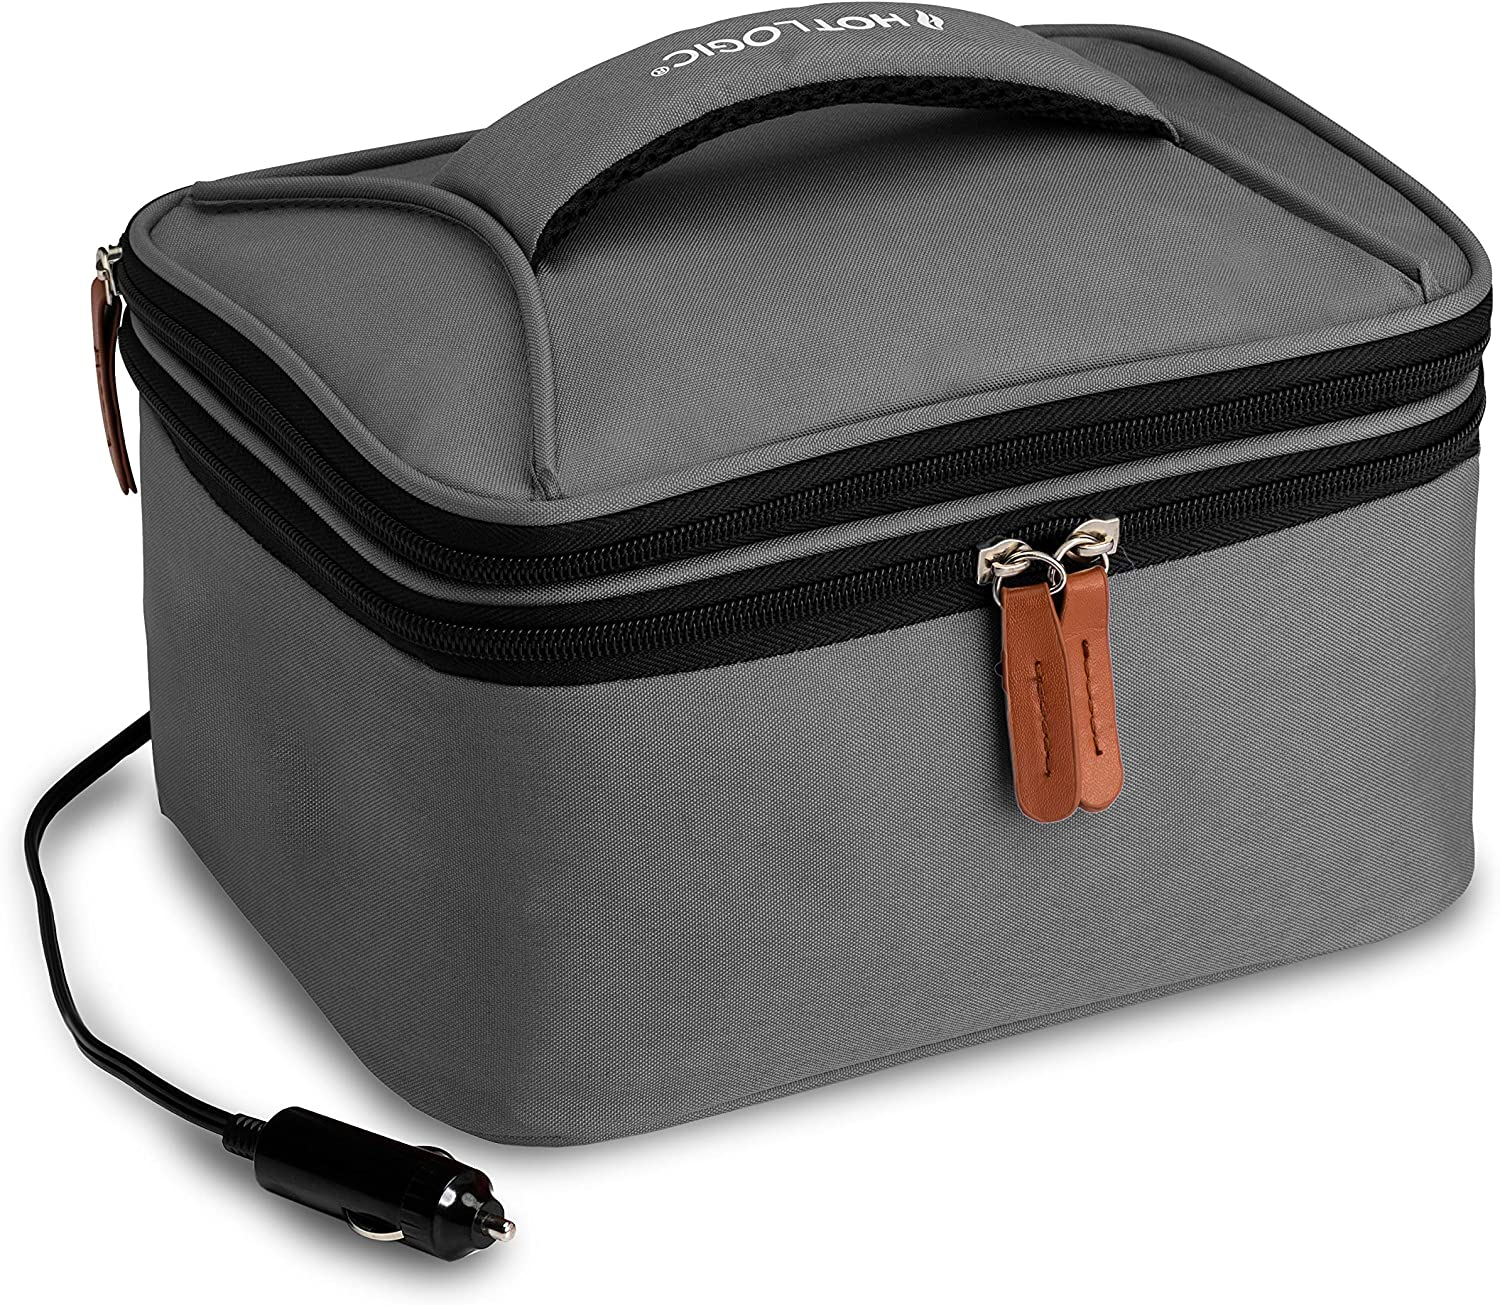 HotLogic 16801174-GY Food Warming Tote Lunch Bag Plus 12V, Gray